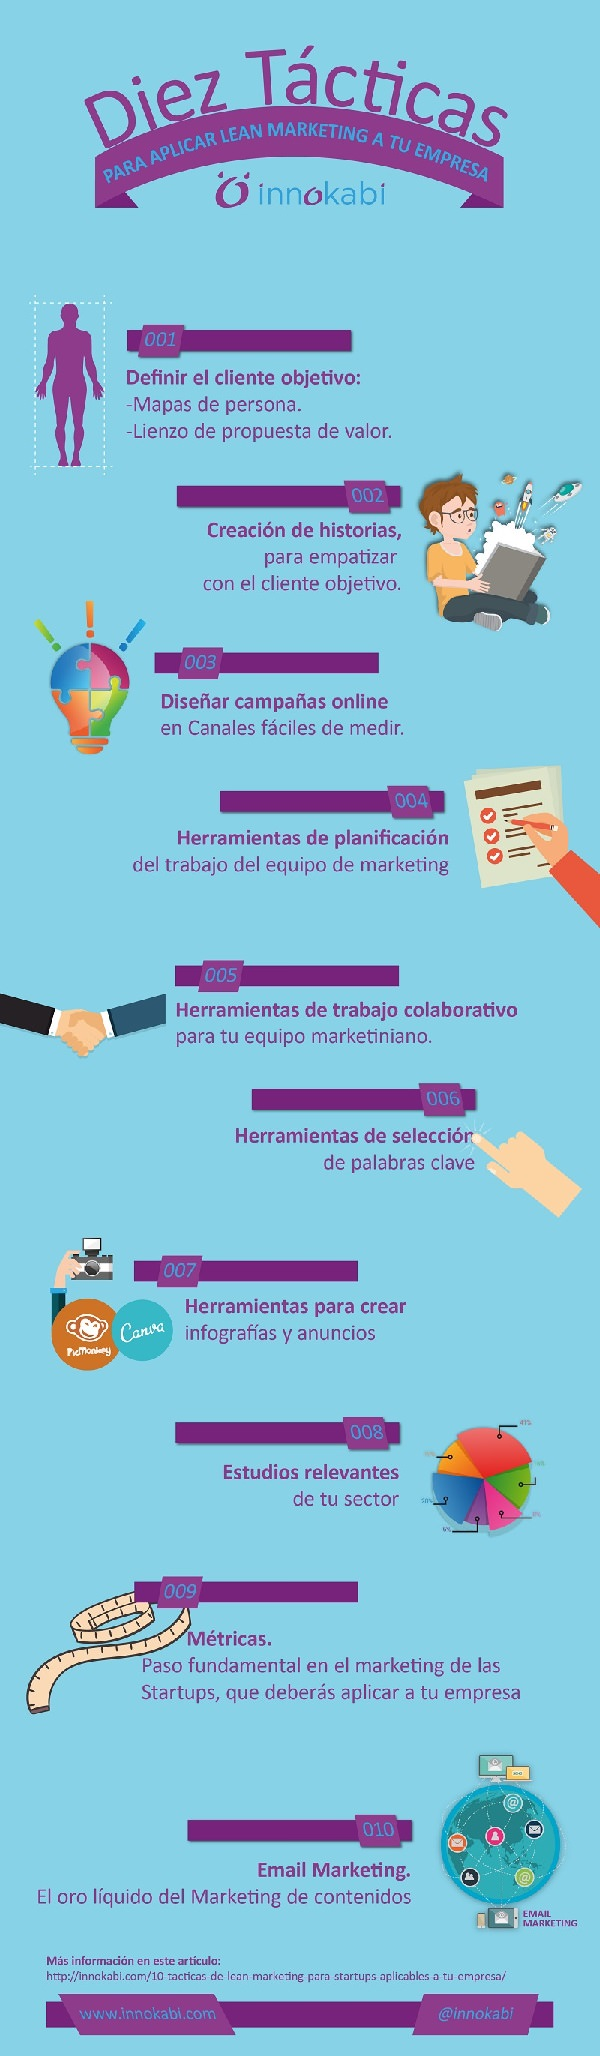 10 tacticas de lean marketing aplicables a tu empresa Portada 600